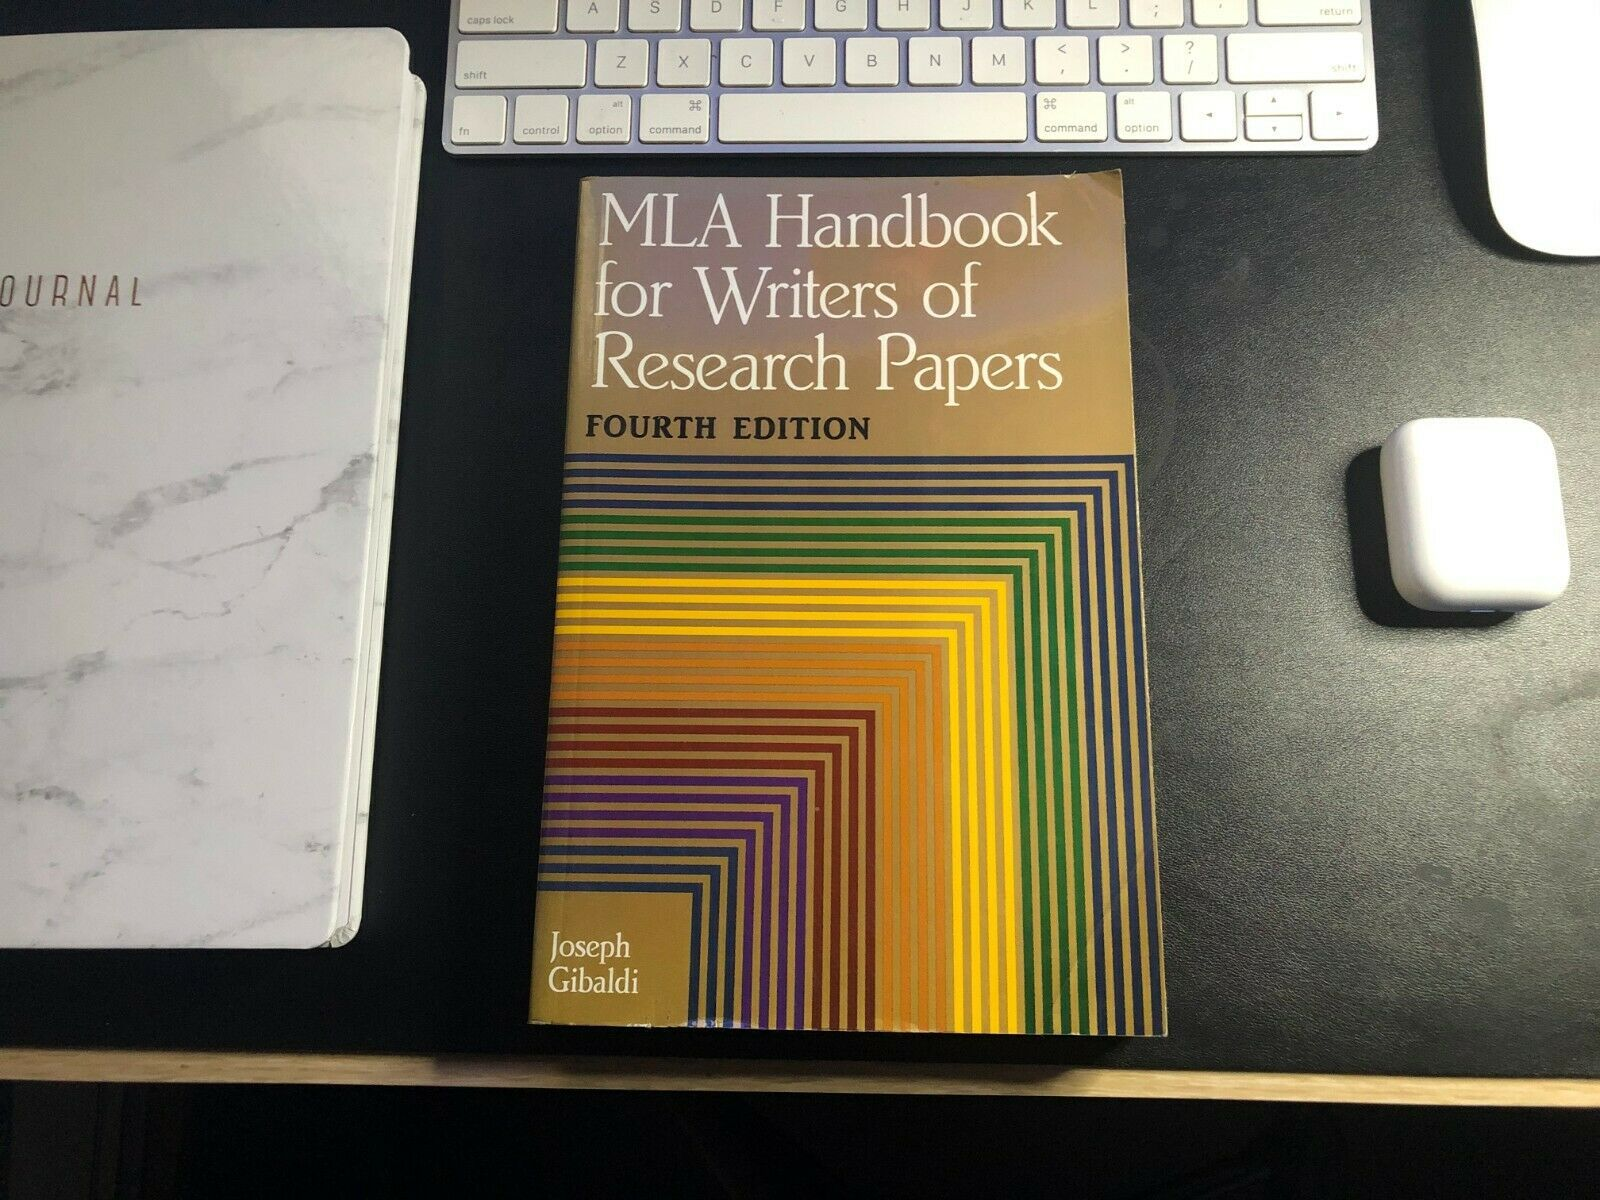 Mla Handbook For Writer Of Research Paper By Joseph Gibaldi 1995 Paperback In 2020 6th Edition Pdf